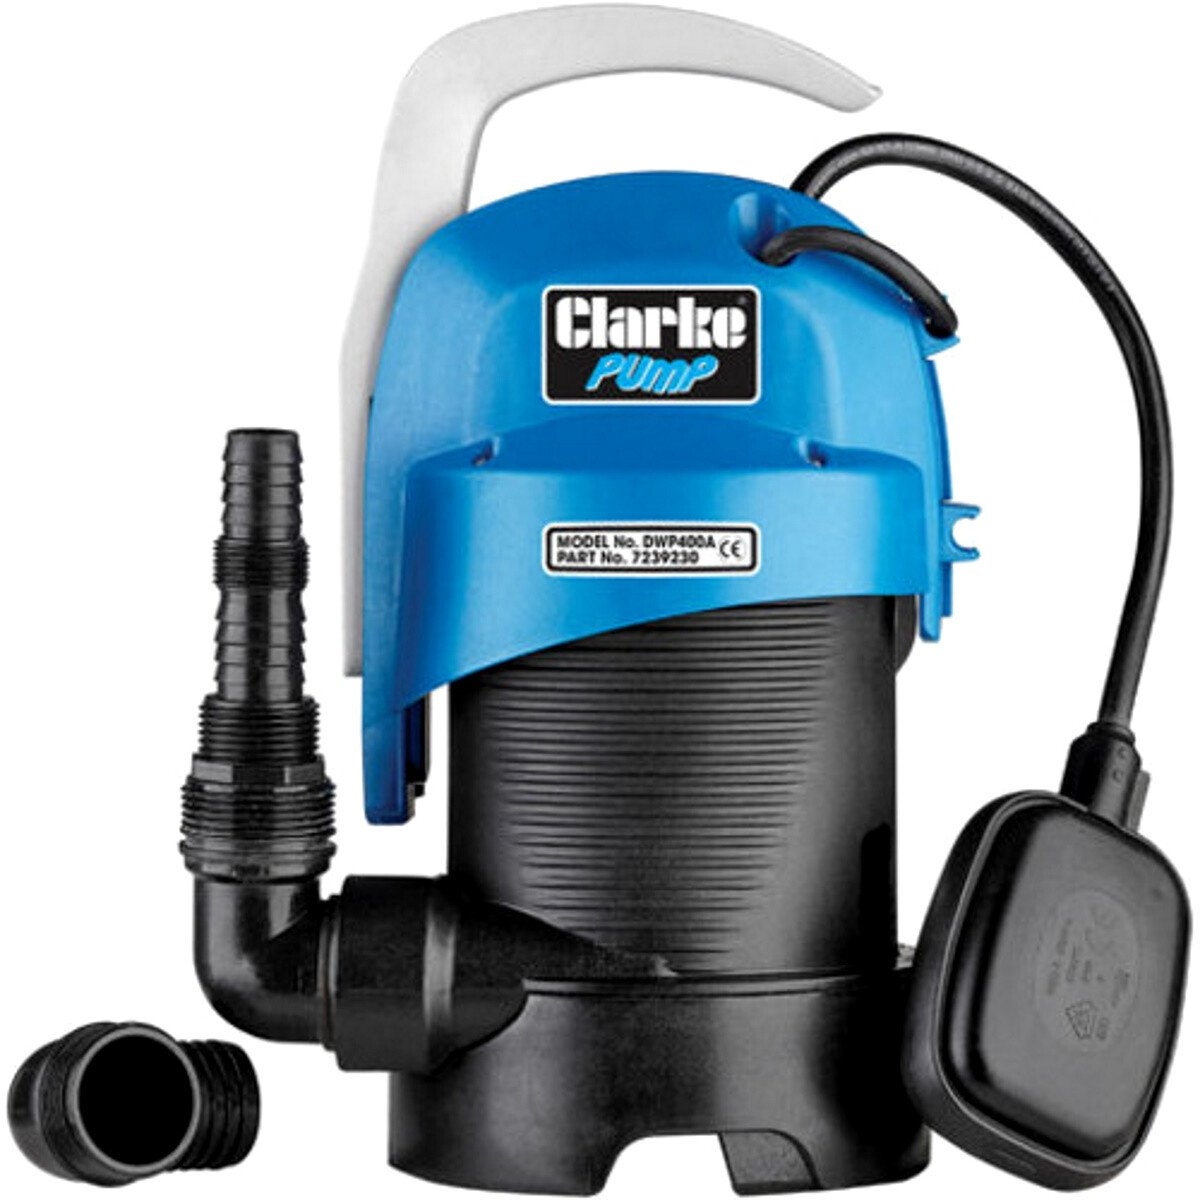 """Clarke DWP400A 1¼"""" 440W 140Lpm 7m Head Clean and Dirty Water Submersible 230V 7239230"""